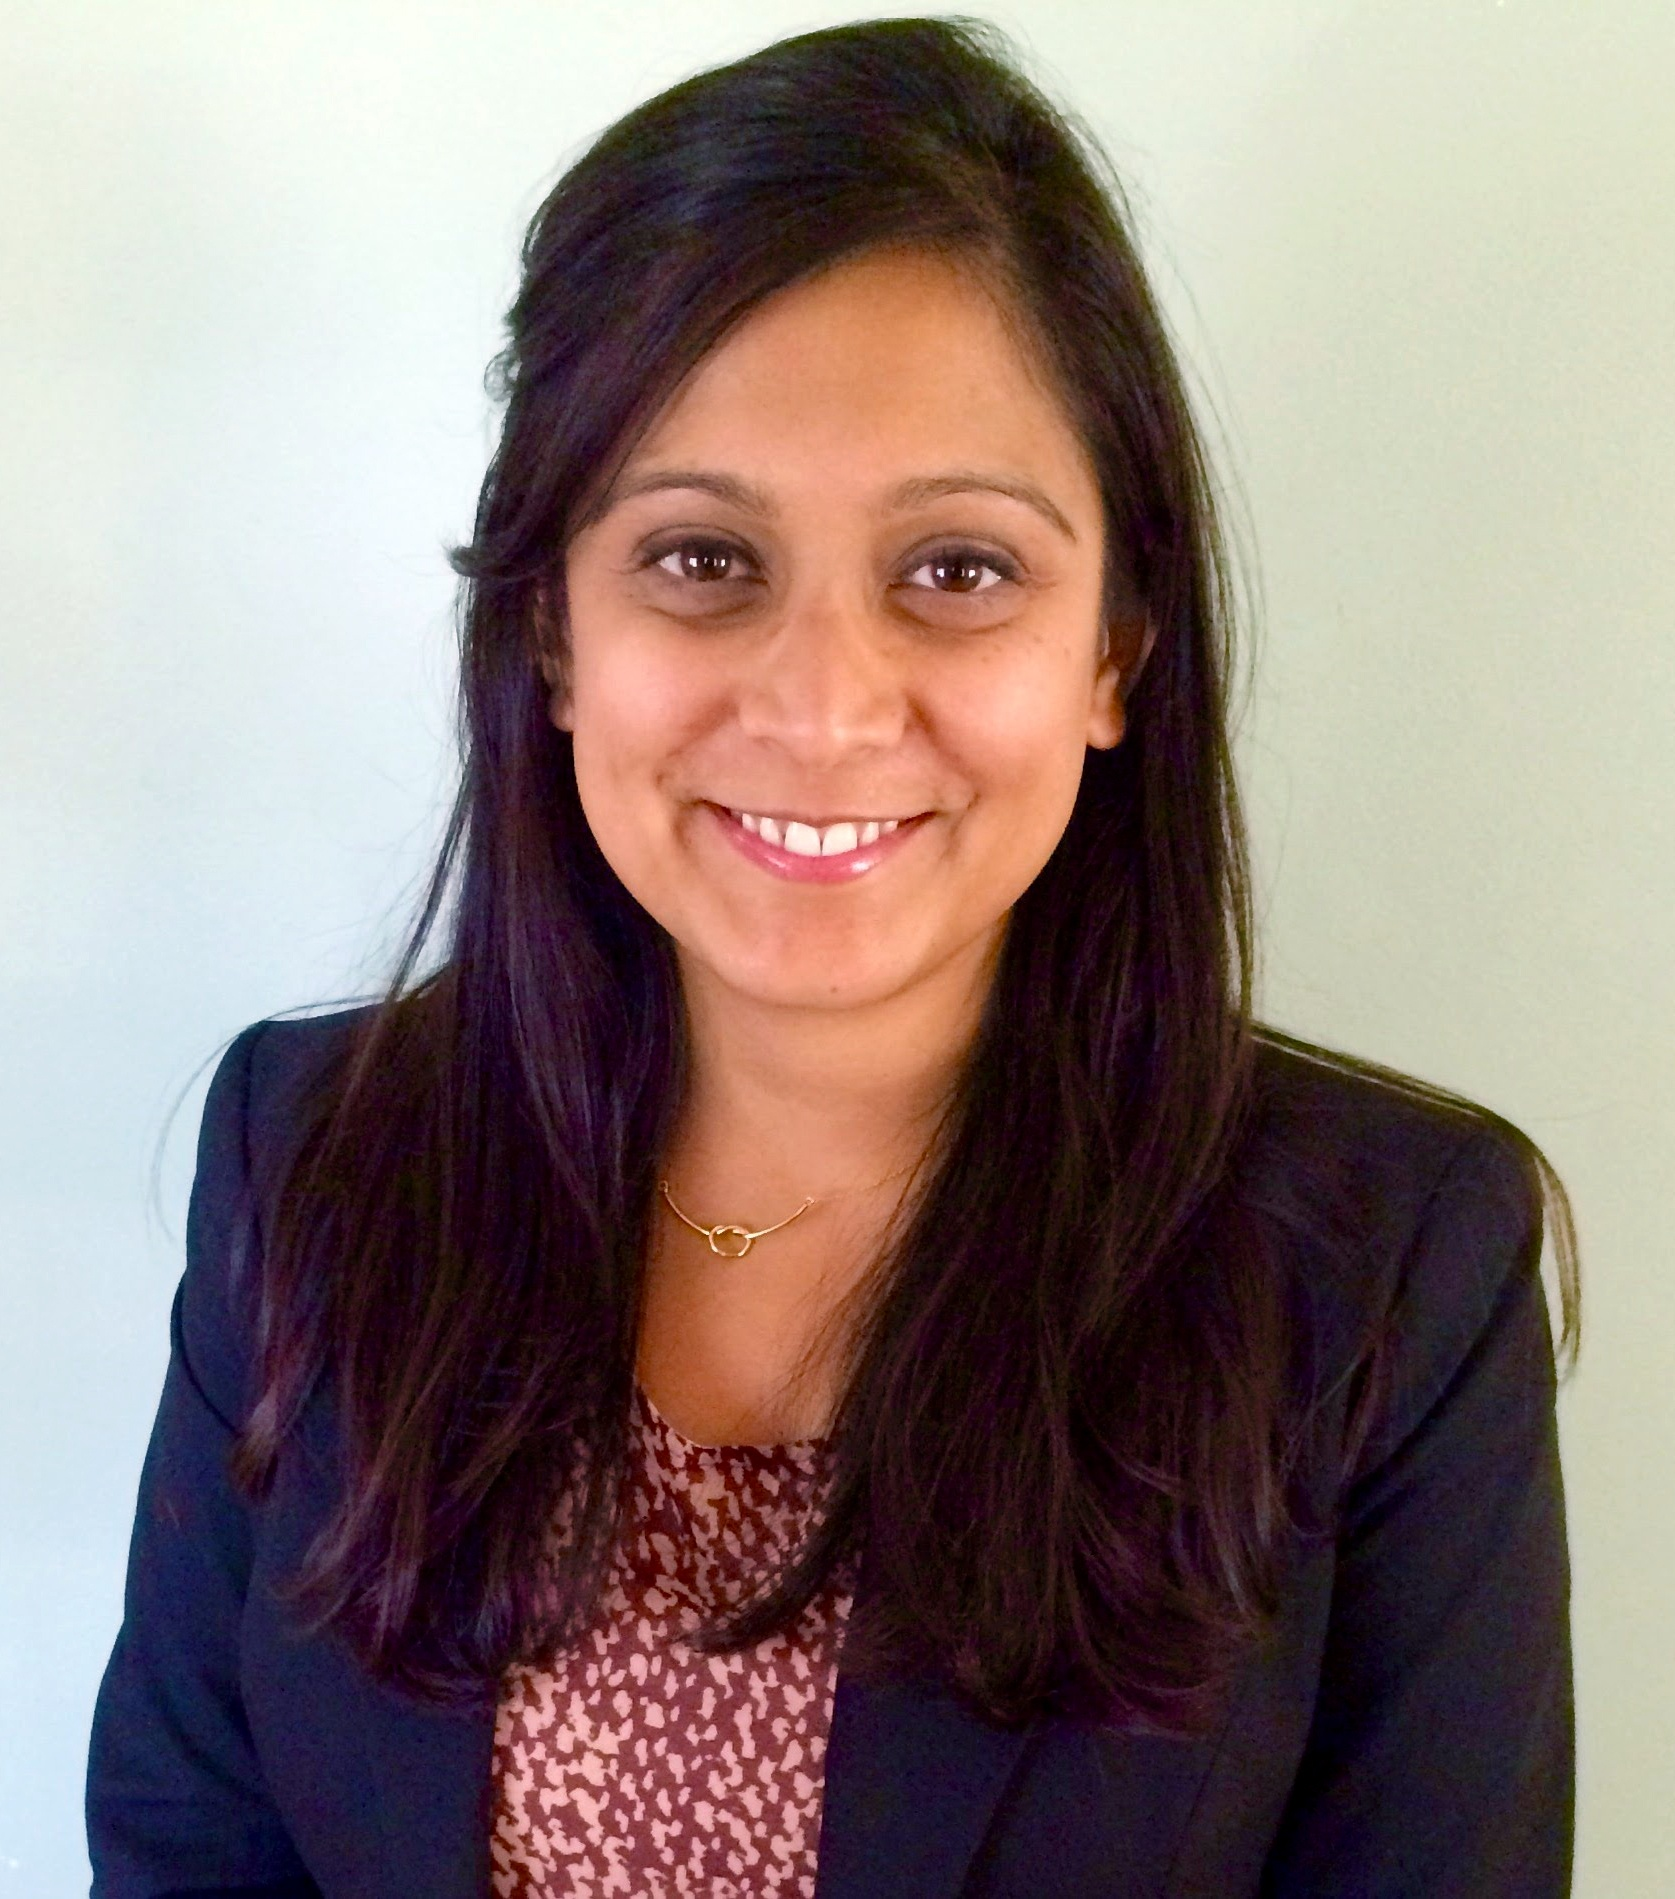 Rishma Patel works together as one for hospice pharmacy